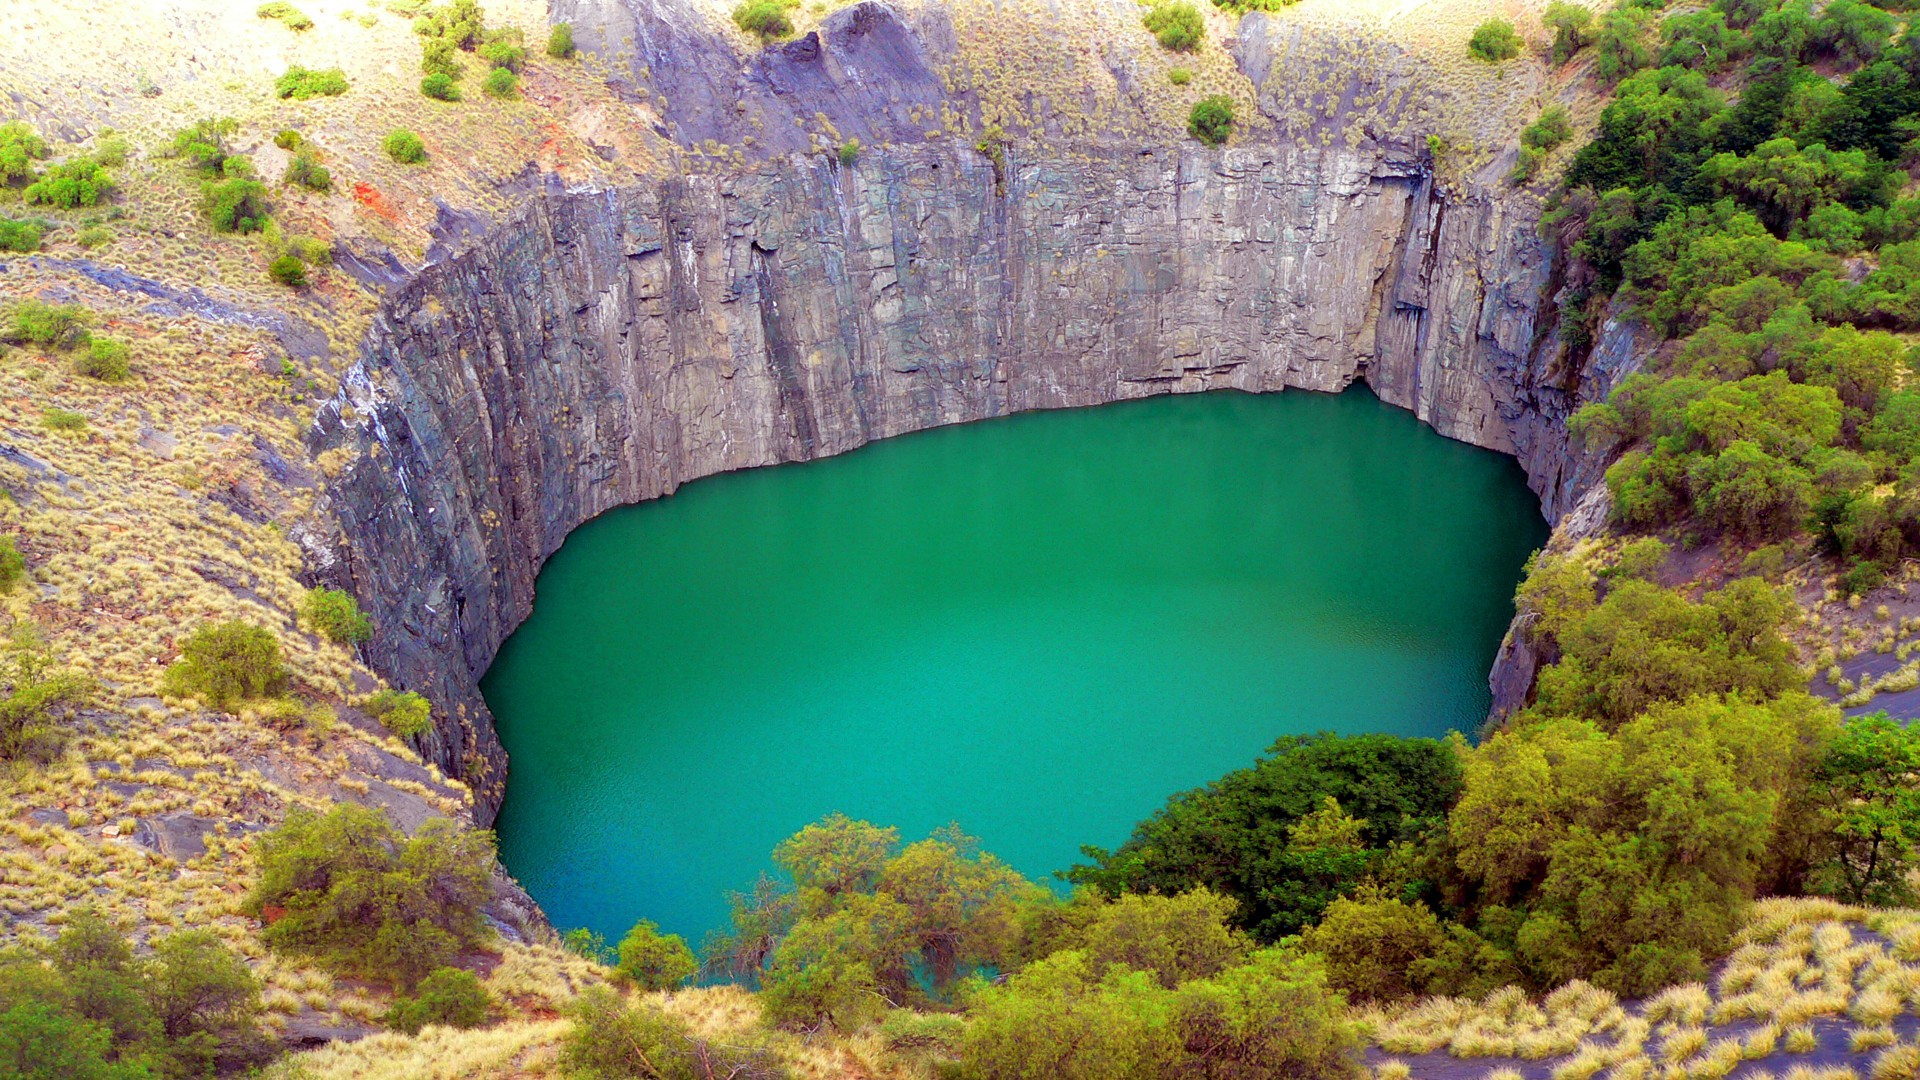 Big-Hole-with-turquoise-green-water-KimberleySouth-Africa-Desktop-Wallpaper-HD-resolution-1920x1080